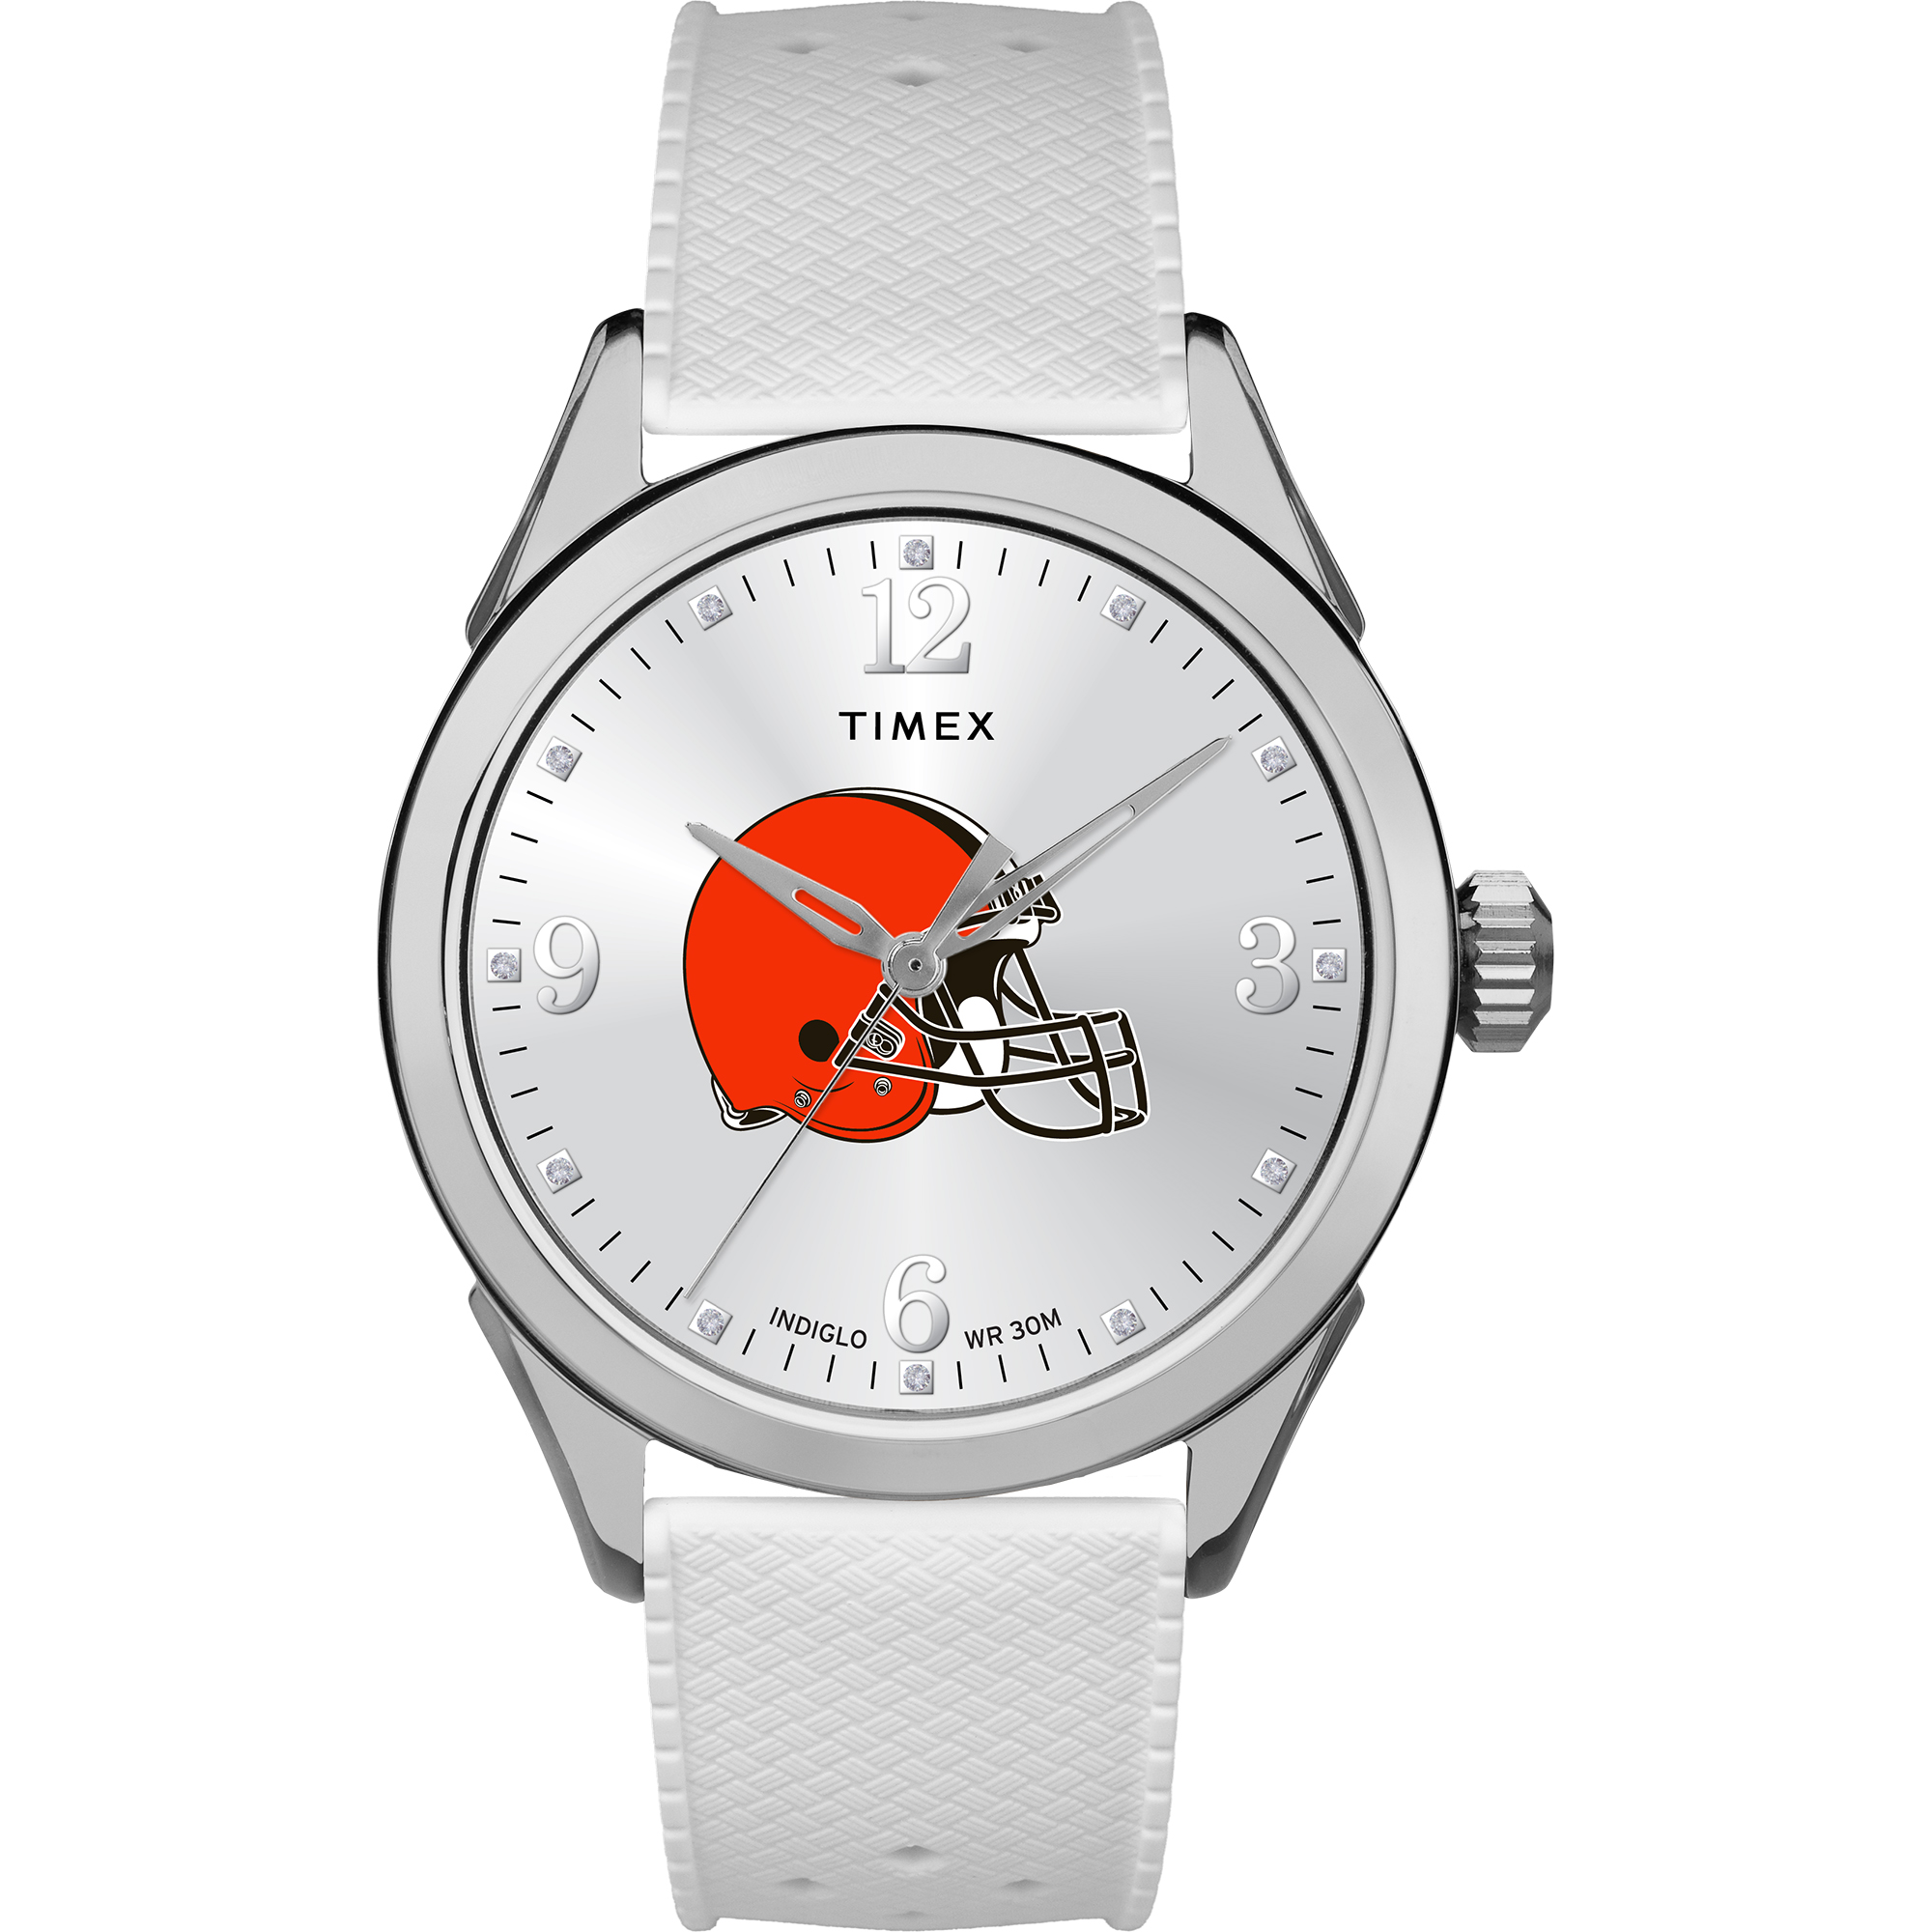 Timex - NFL Tribute Collection Athena Women's Watch, Cleveland Browns